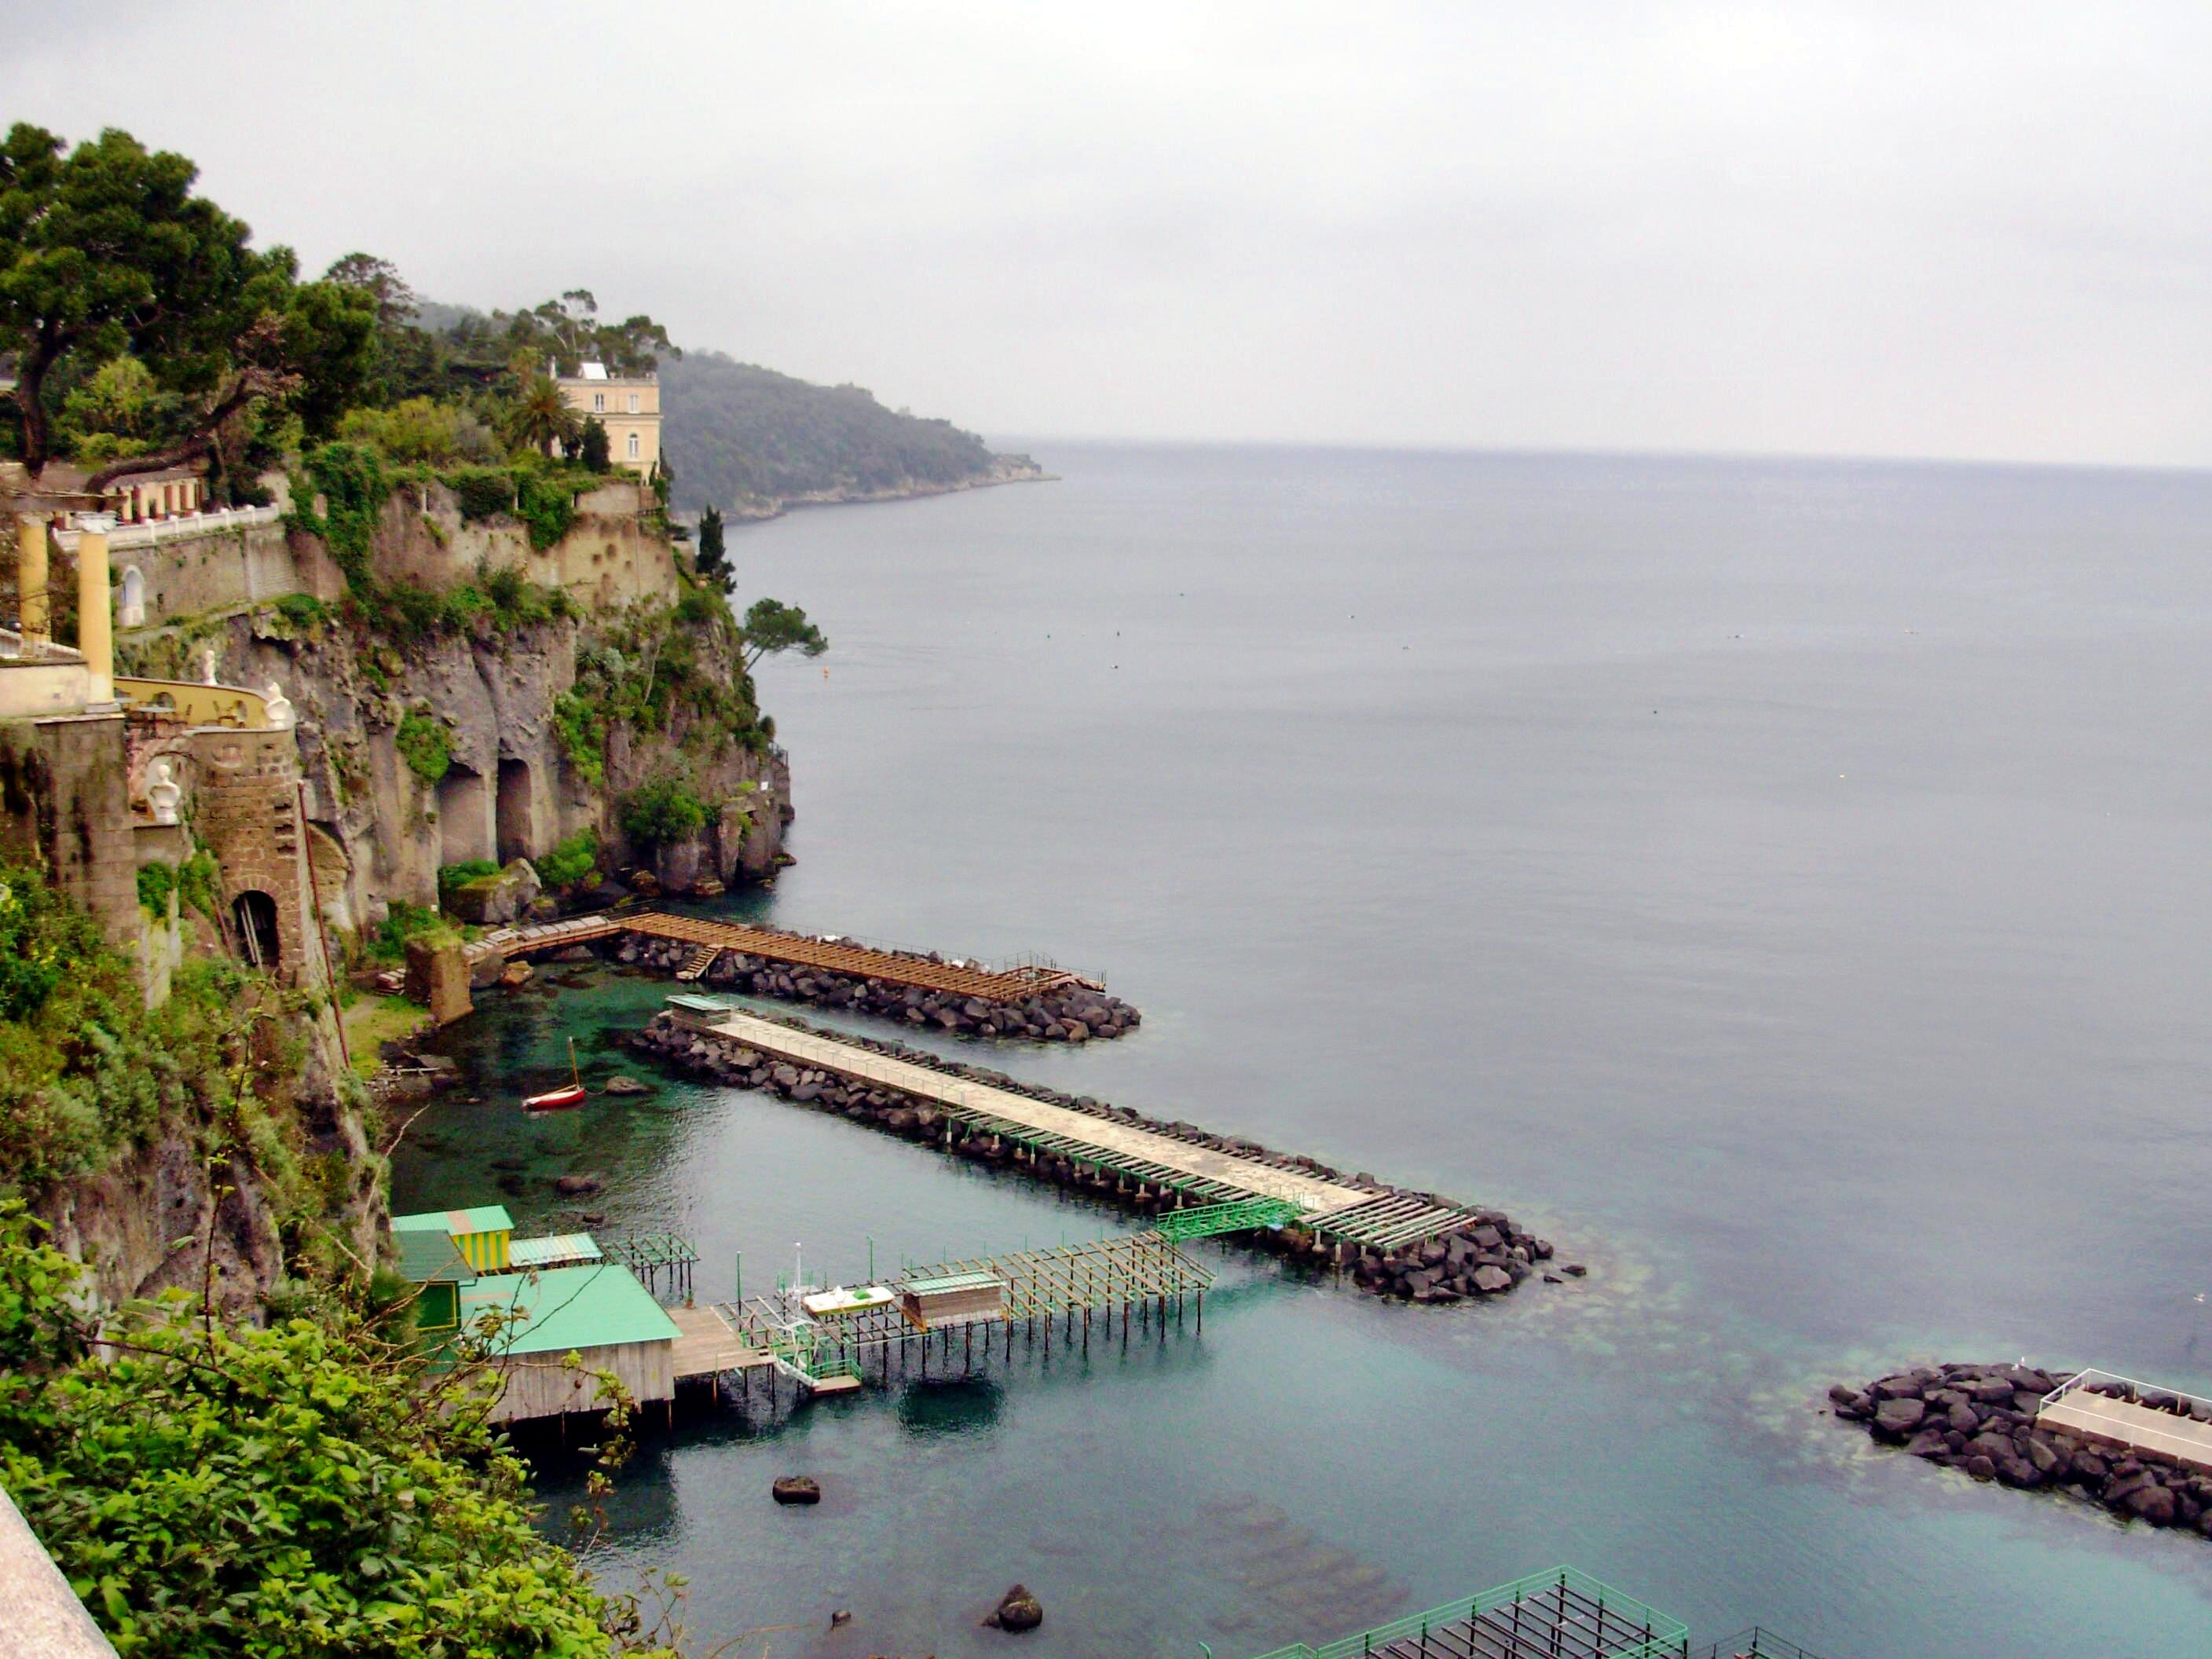 This should be Sorrento-1.jpeg.  Is it missing?